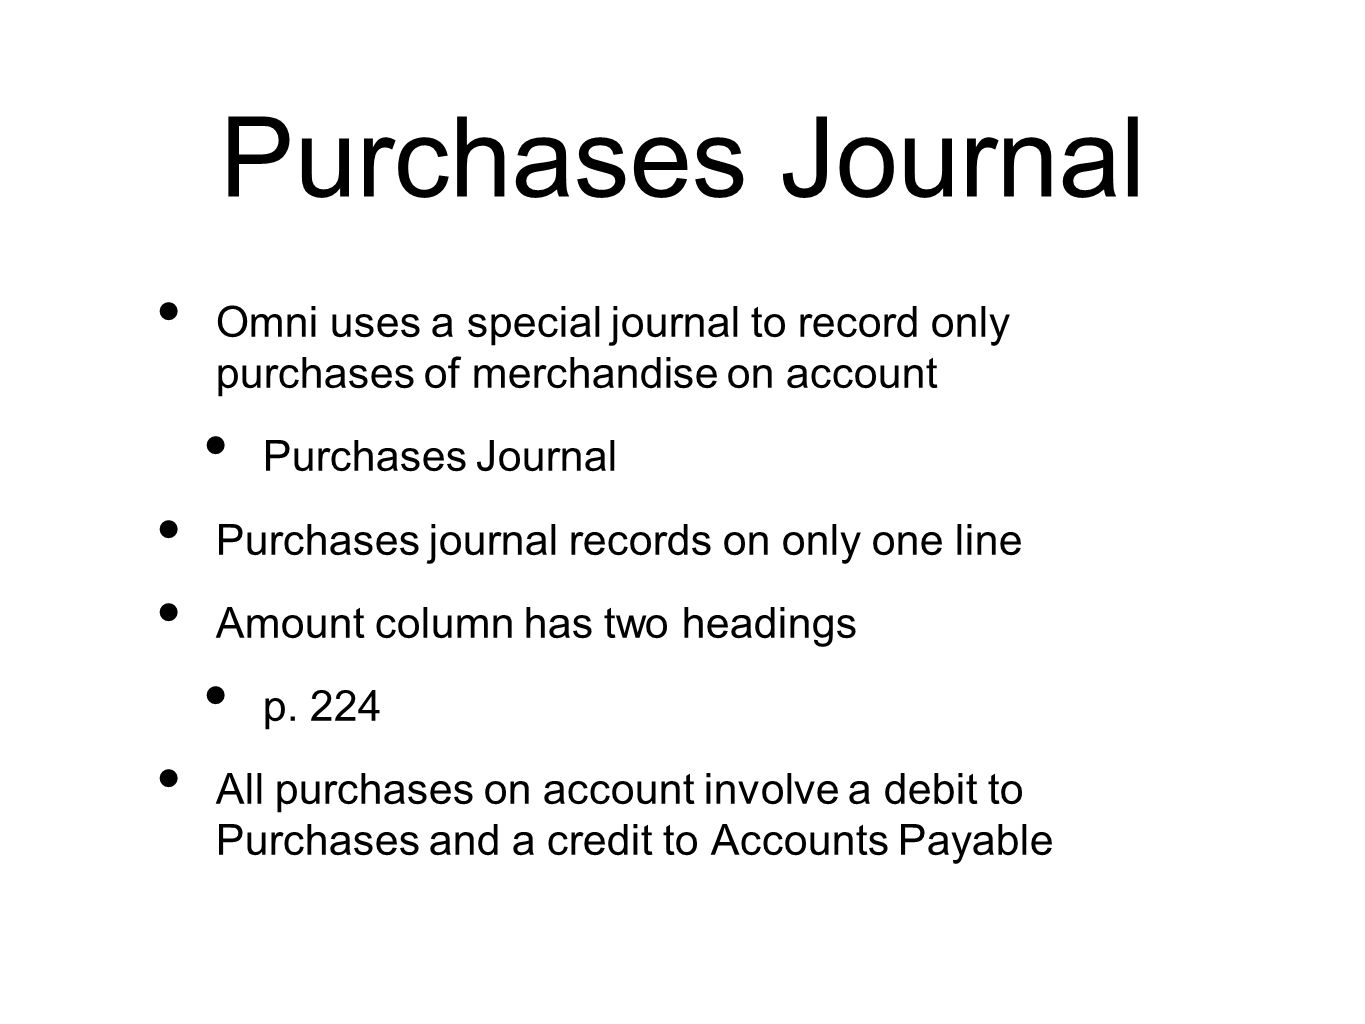 Purchases Journal Omni uses a special journal to record only purchases of merchandise on account. Purchases Journal.